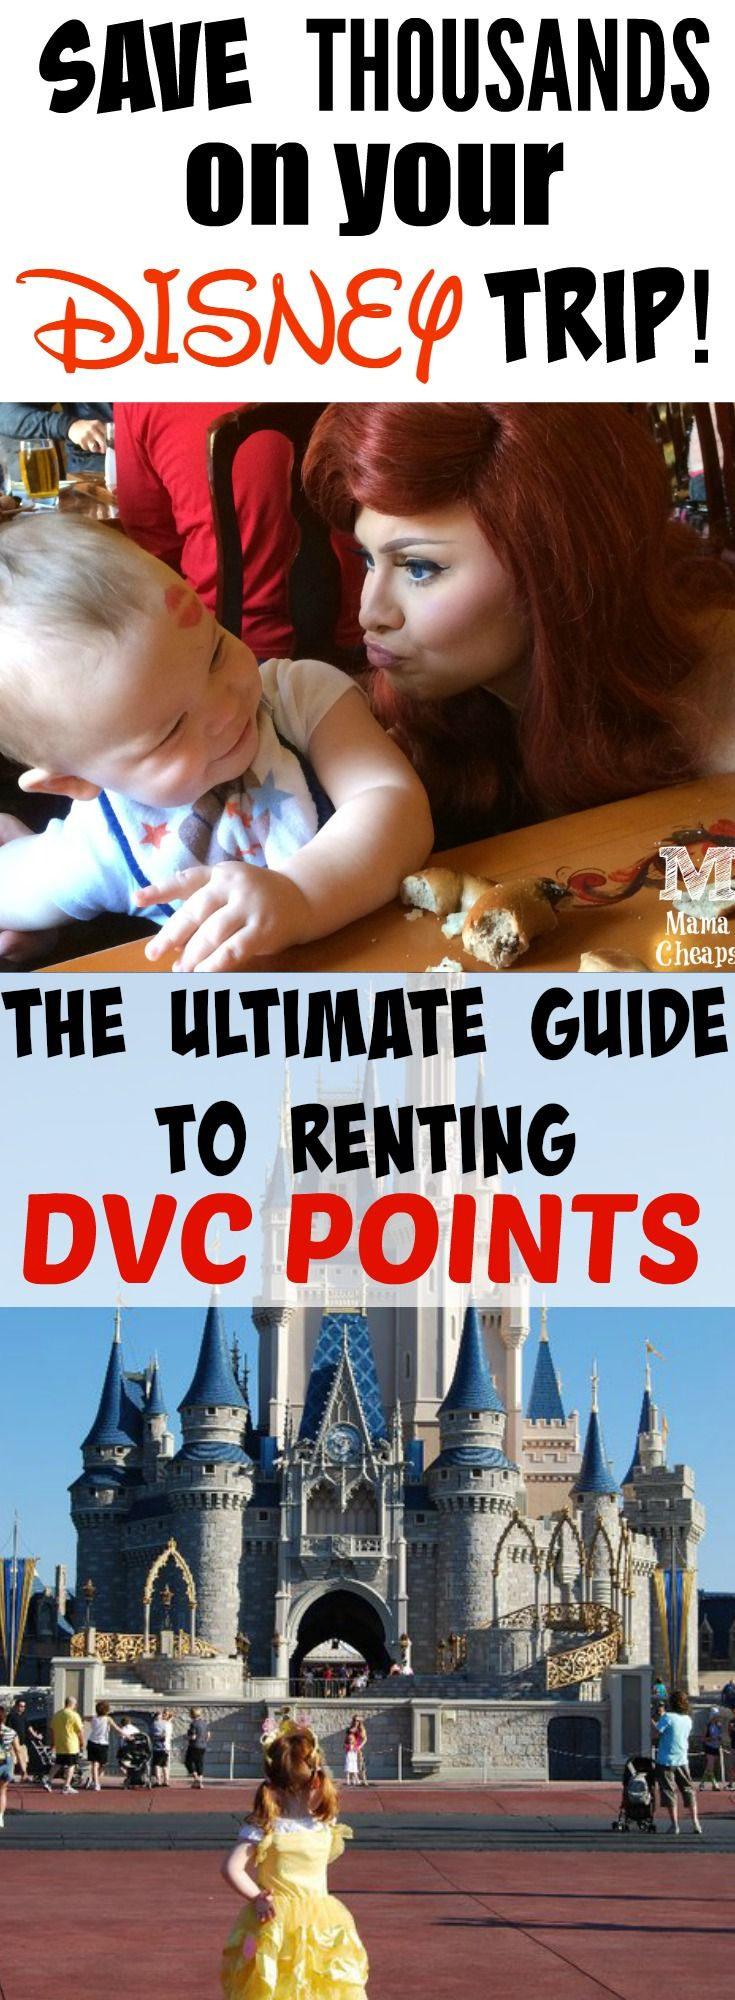 The Ultimate Guide to Renting DVC Points (and saving THOUSANDS on your Disney Trip!!) Find more great Disney tips and tricks at MamaCheaps.com!